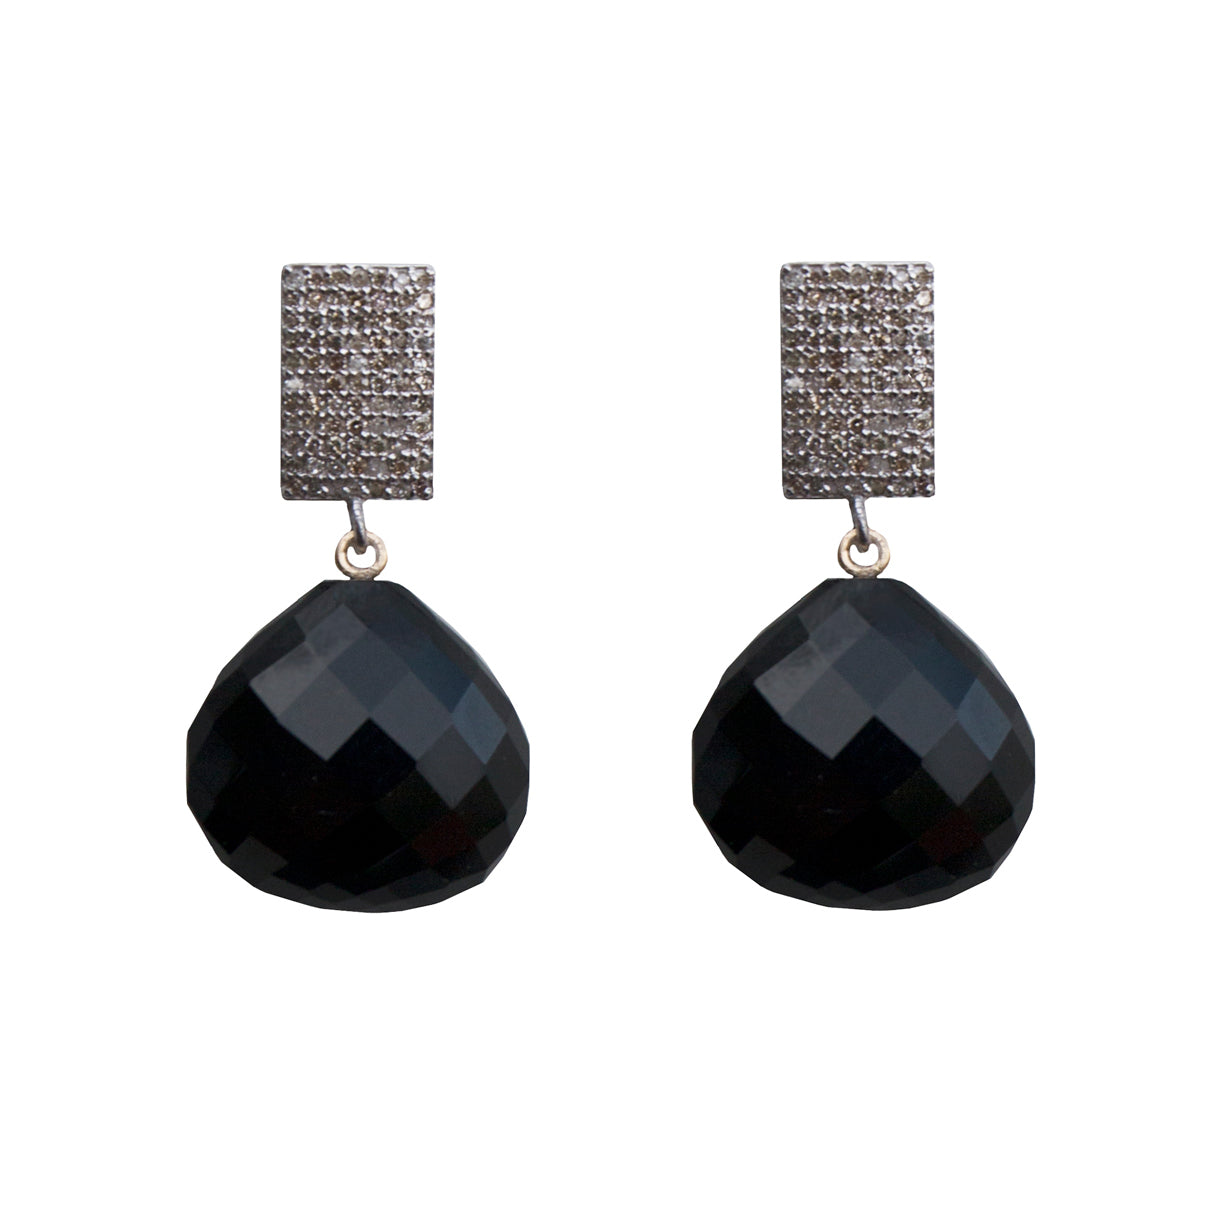 Diamond Earrings with Onyx Drops - Joan Hornig Jewelry